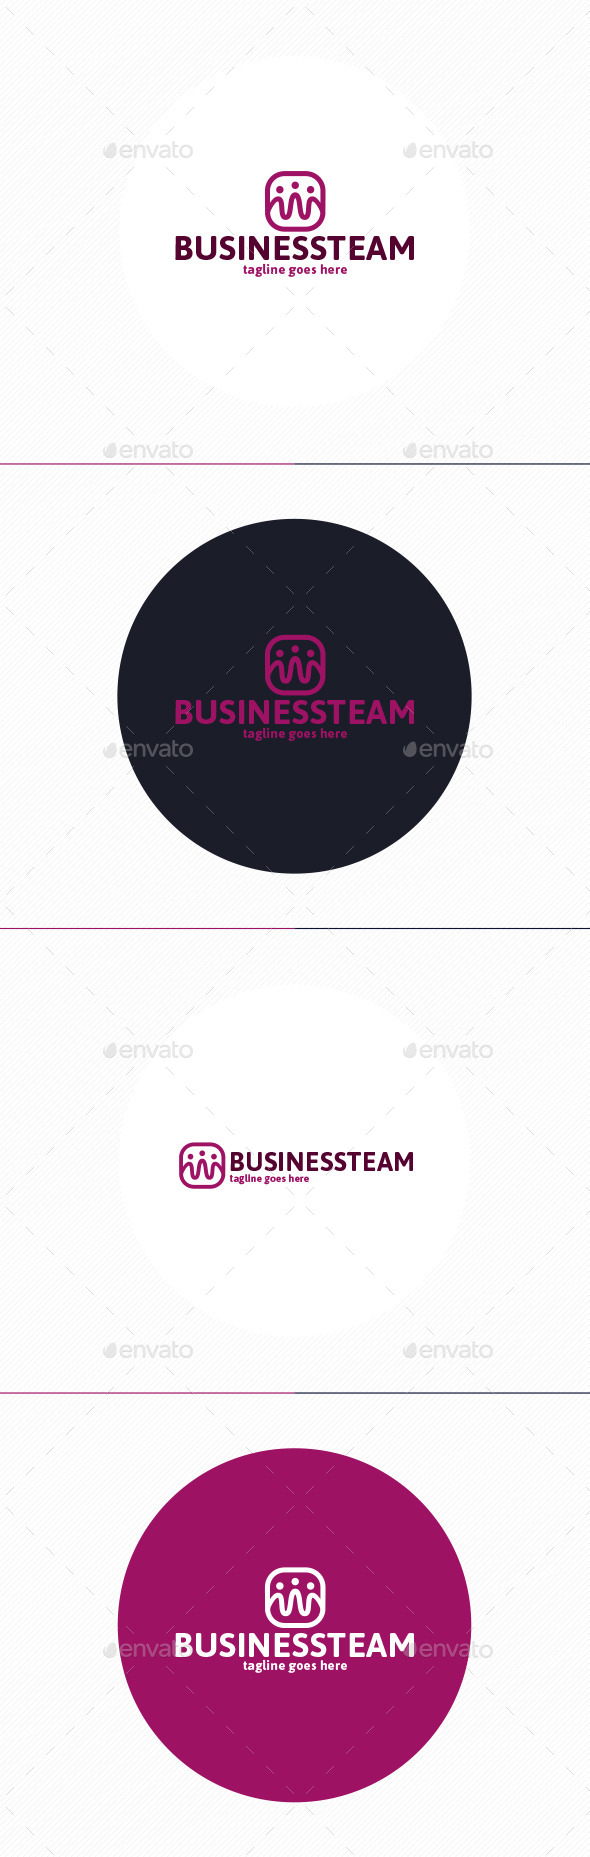 GraphicRiver Business Team Logo 10952449